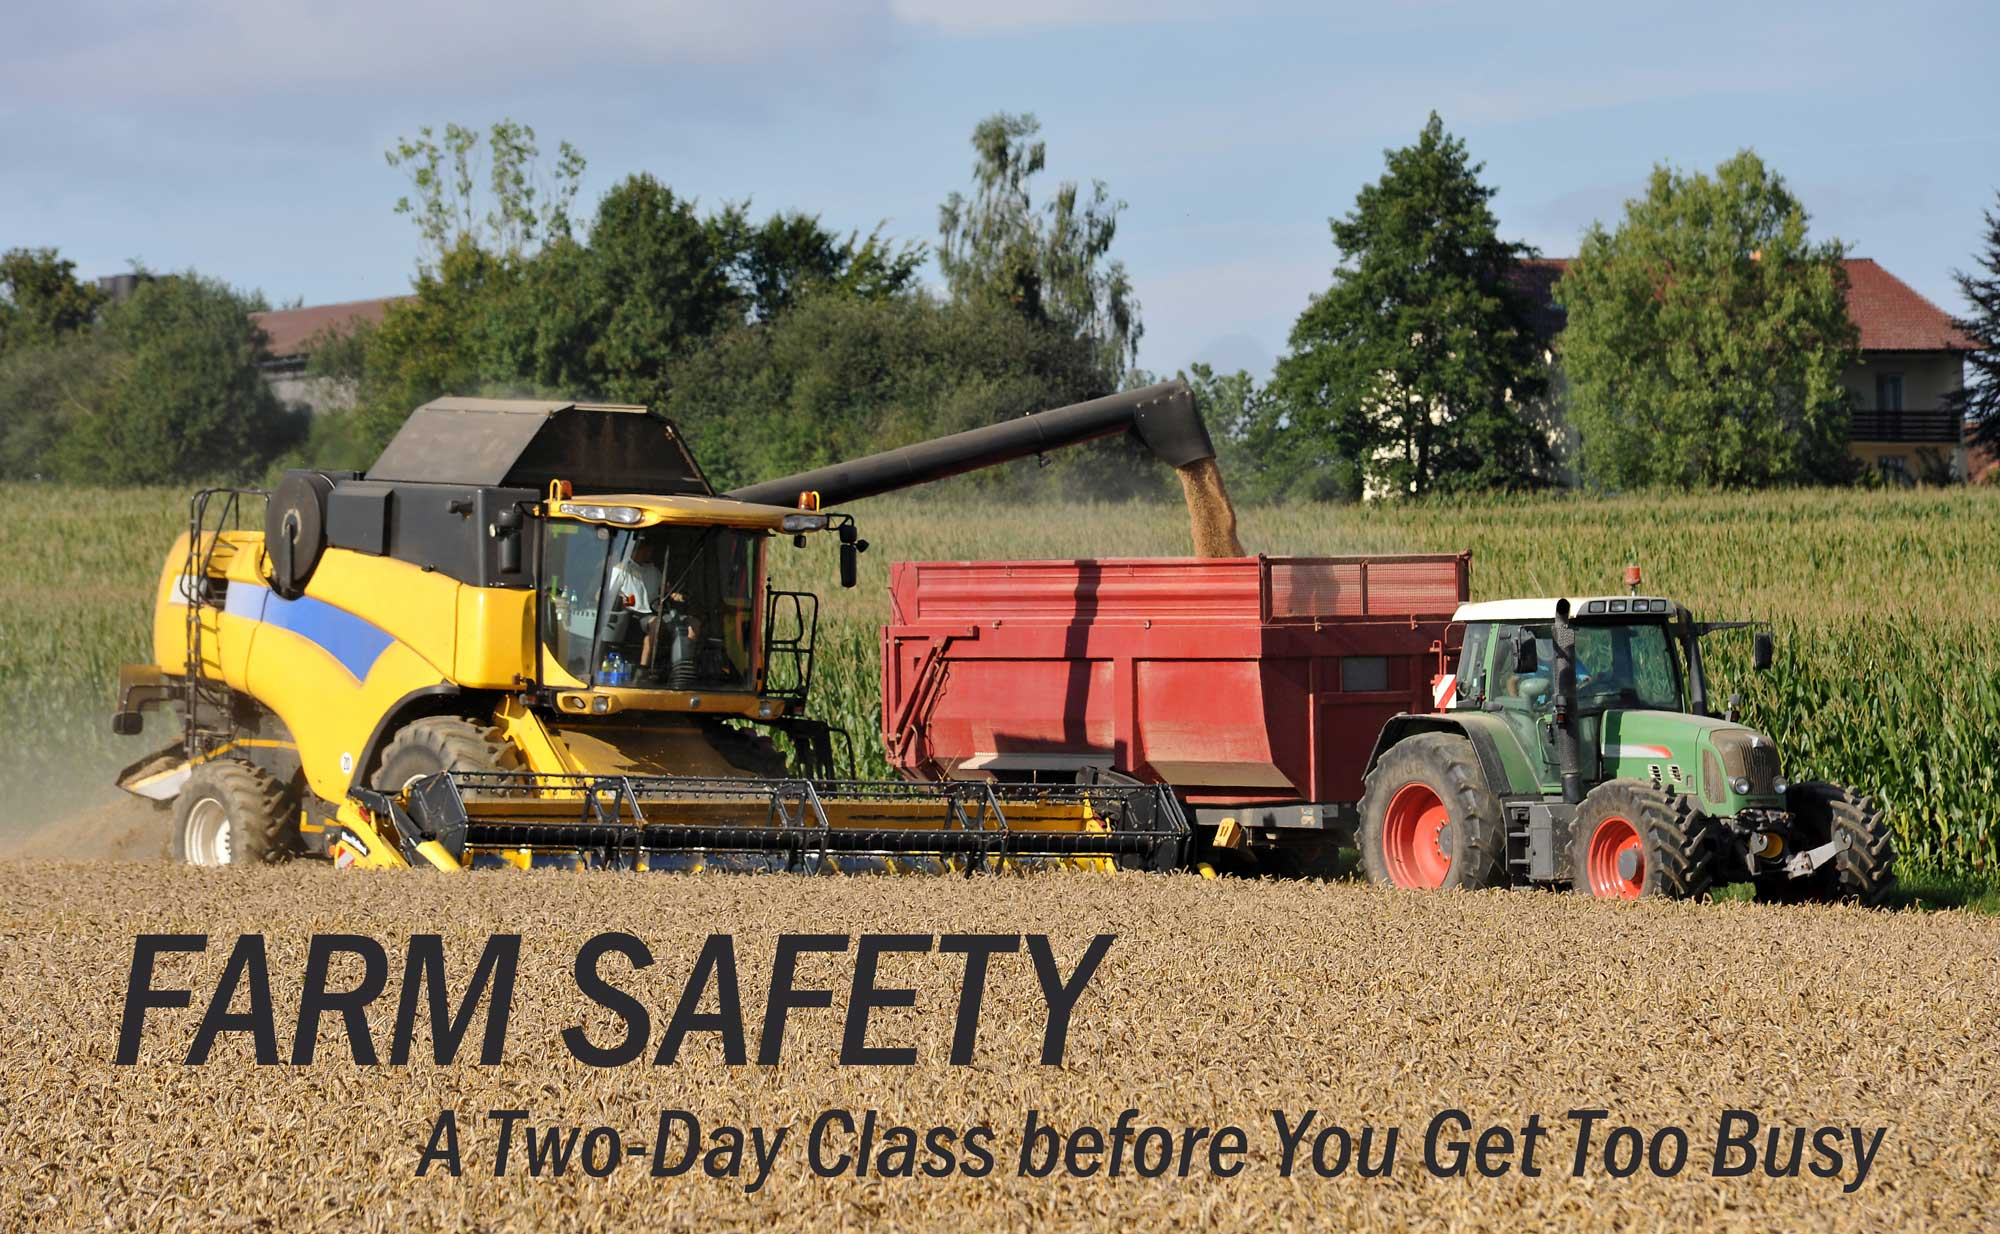 Farm Safety, combine and tractor